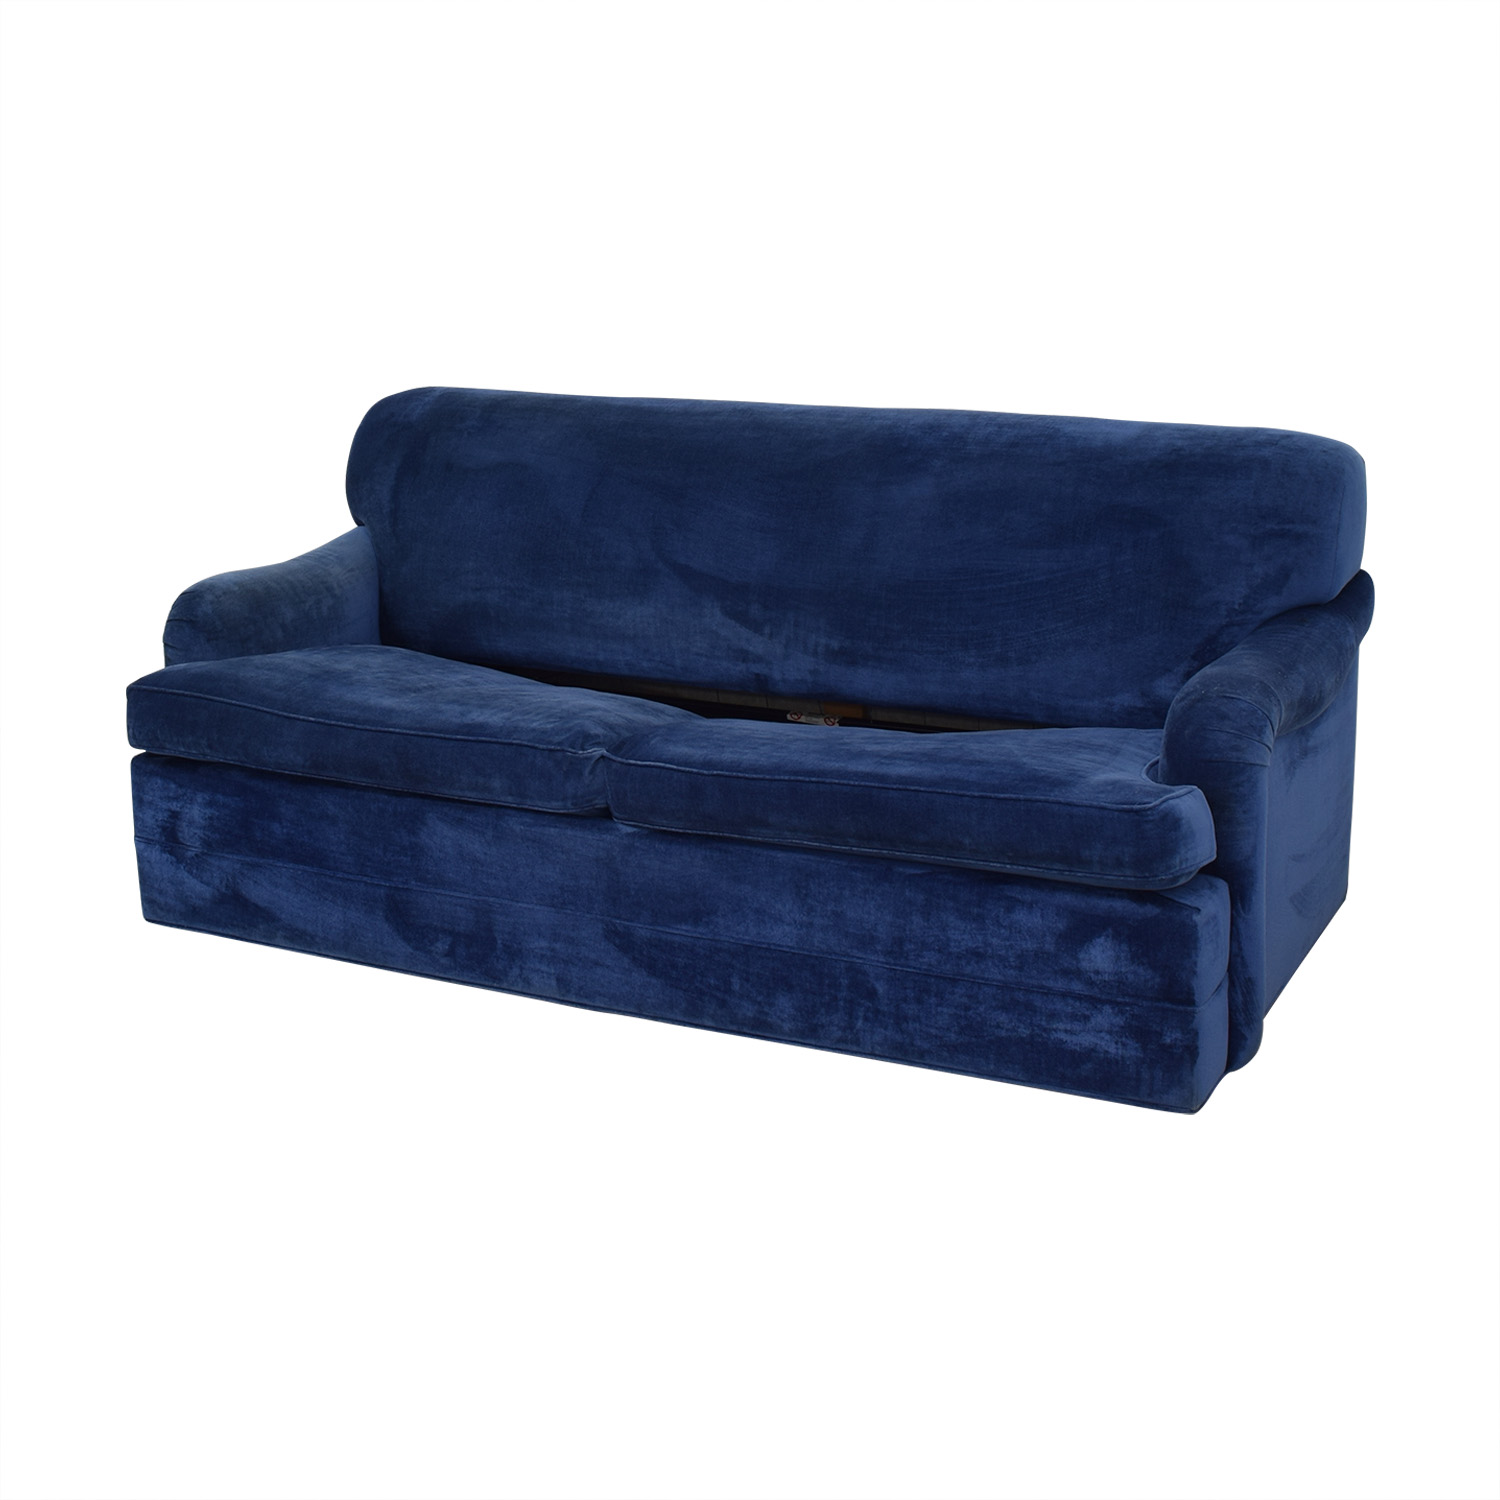 Carlyle Carlyle Full Sofa Bed Sofa Beds